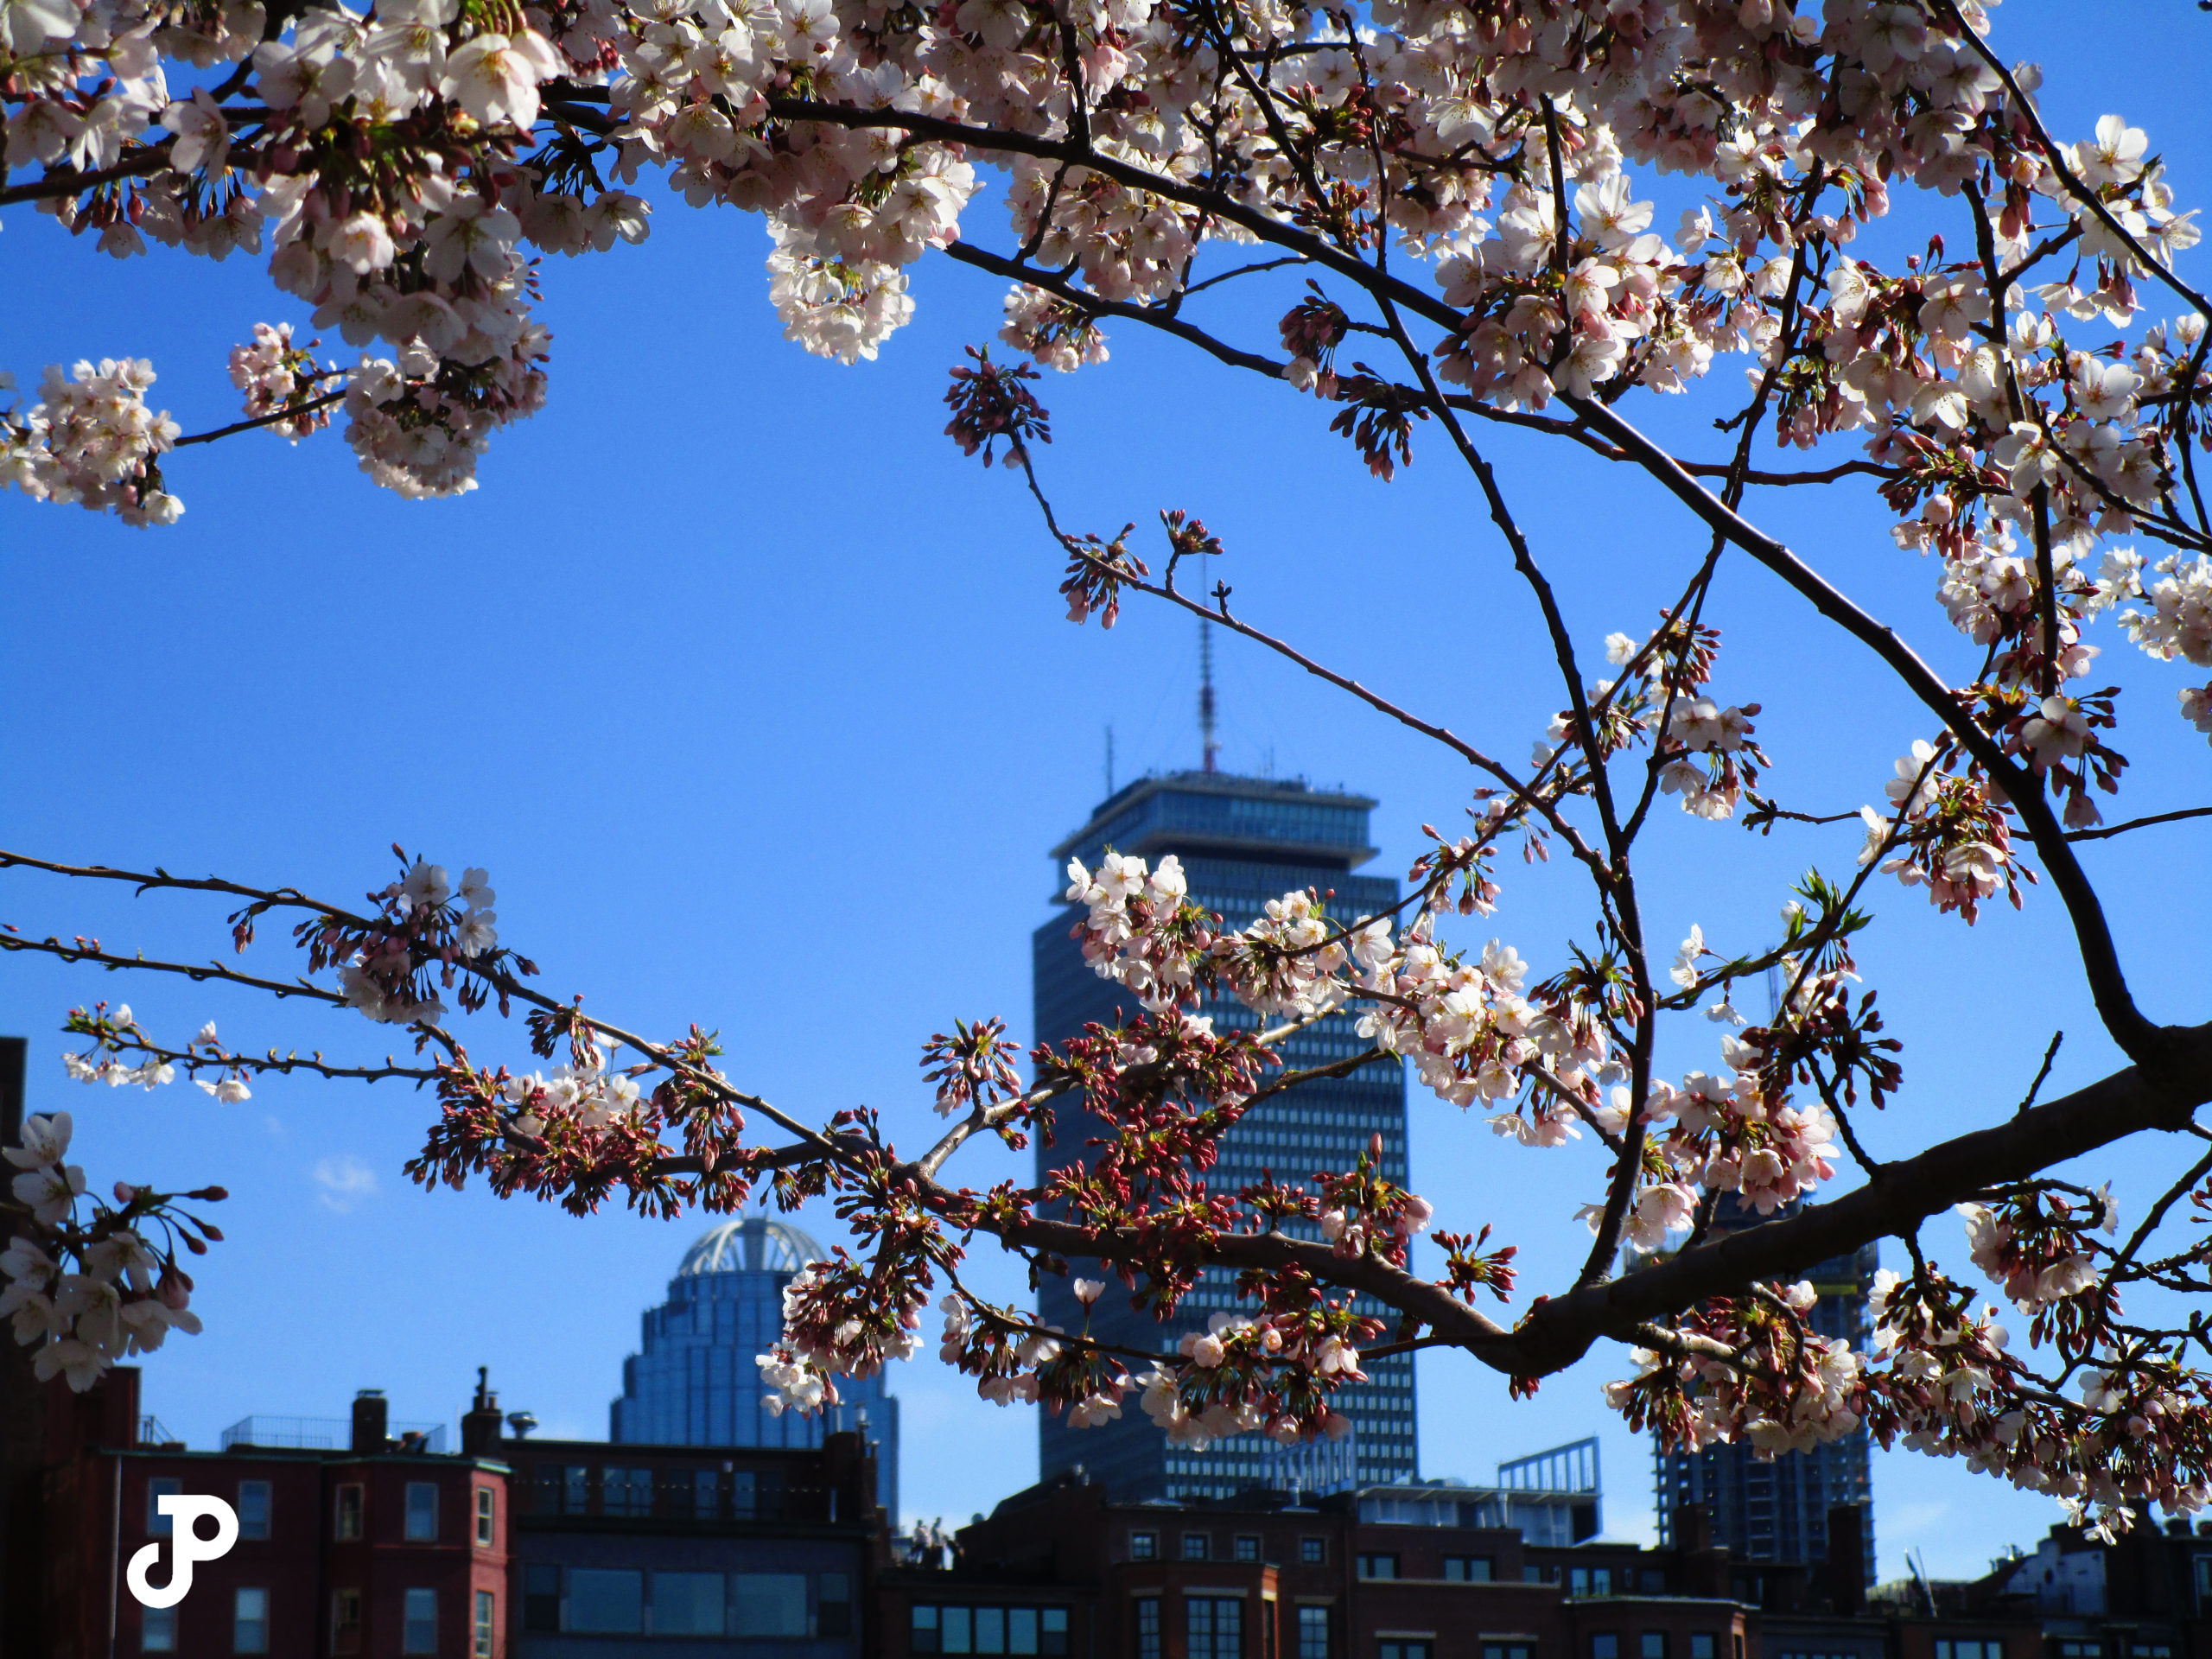 the Prudential building in the distance, seen between branches of cherry blossoms in the foreground